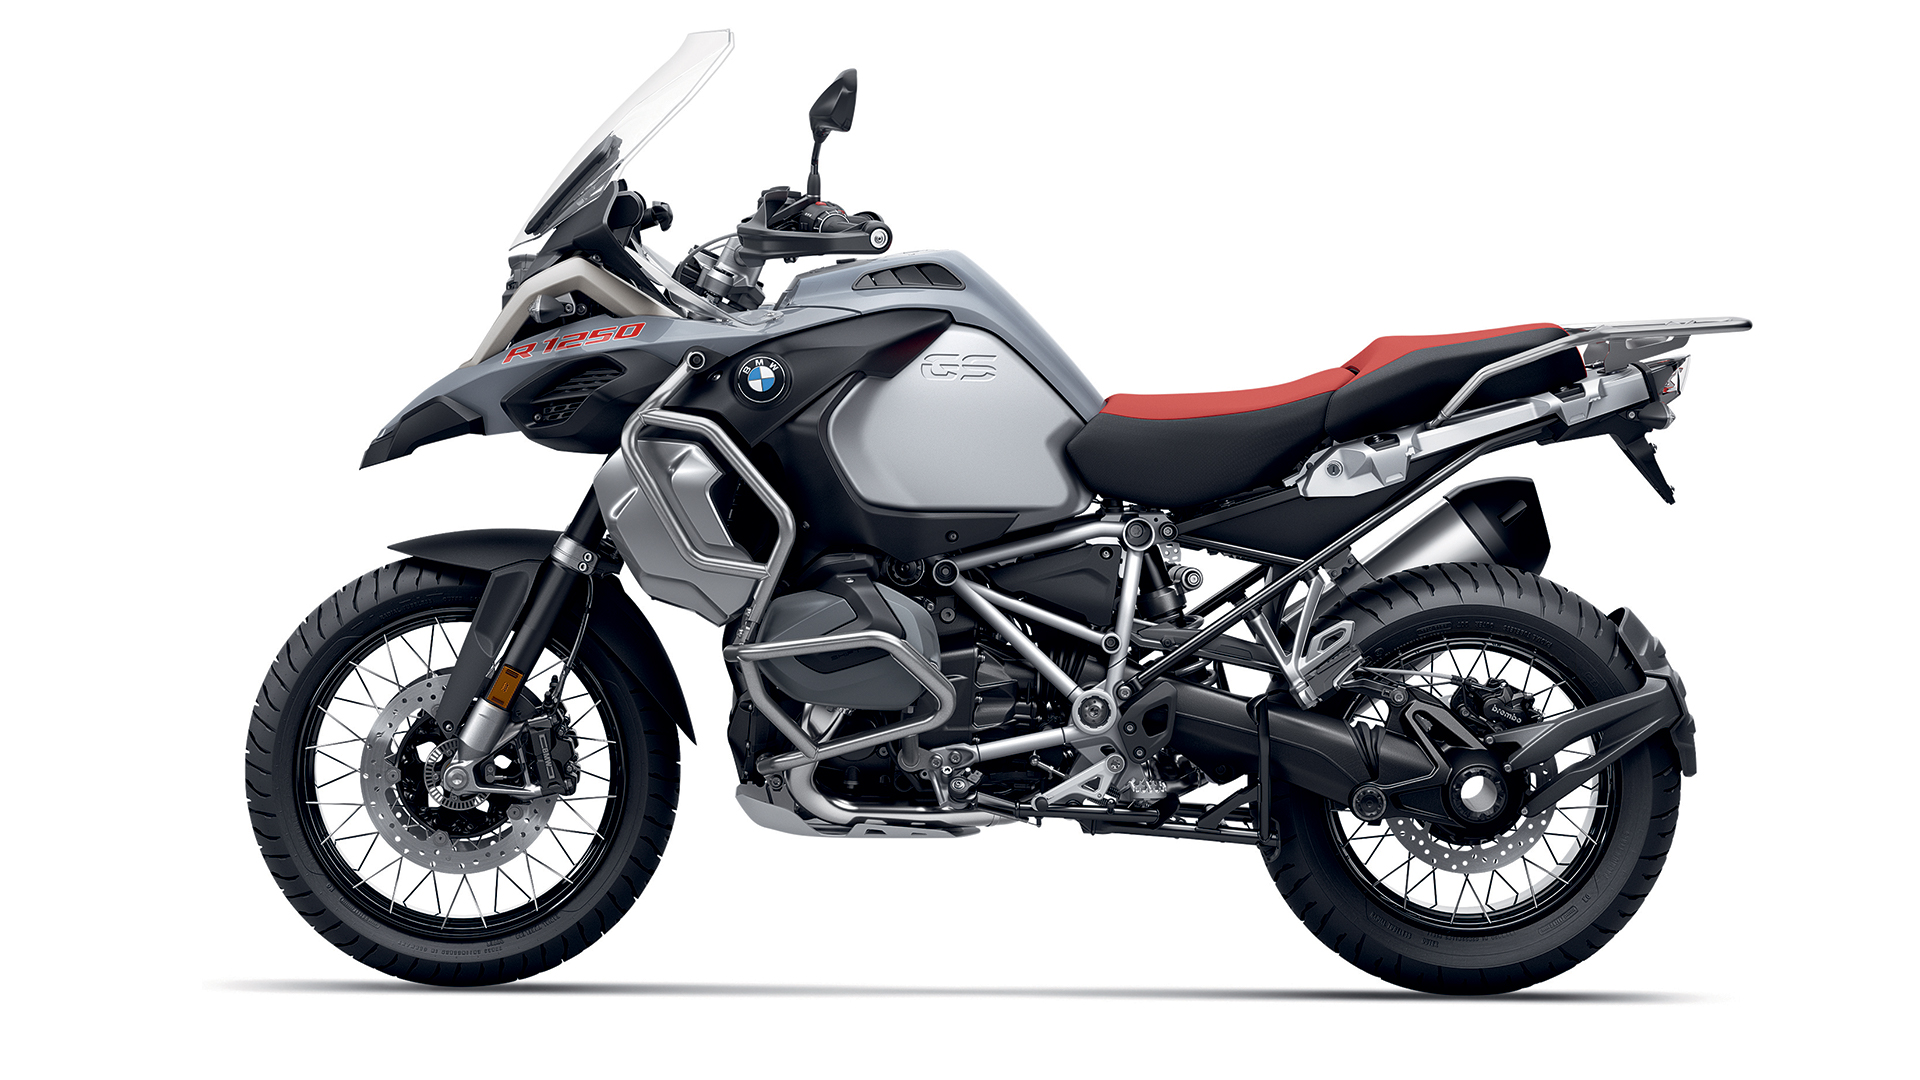 bmw motorrad g 310 gs for sale at gold coast bmw motorrad in gold coast qld specifications